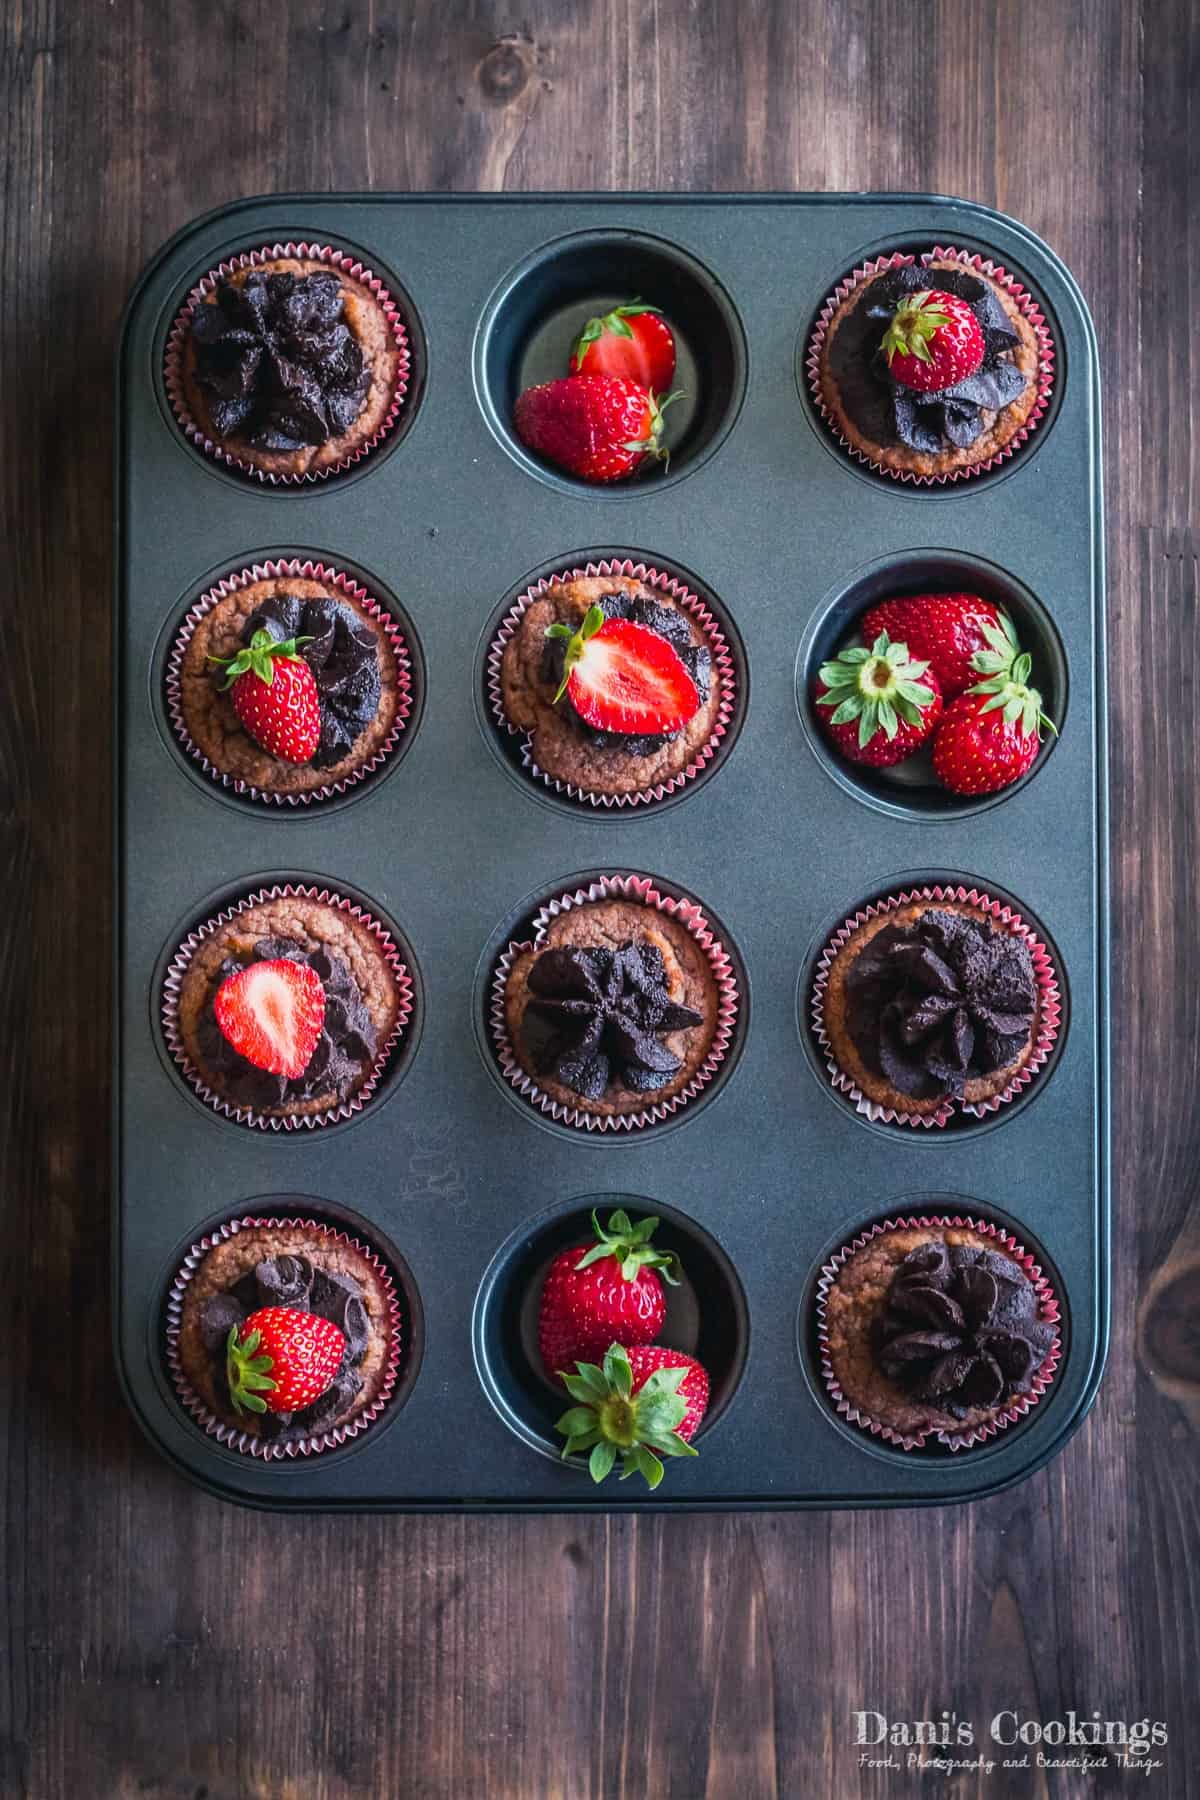 cupcakes with strawberries and chocolate frosting in a muffin tin